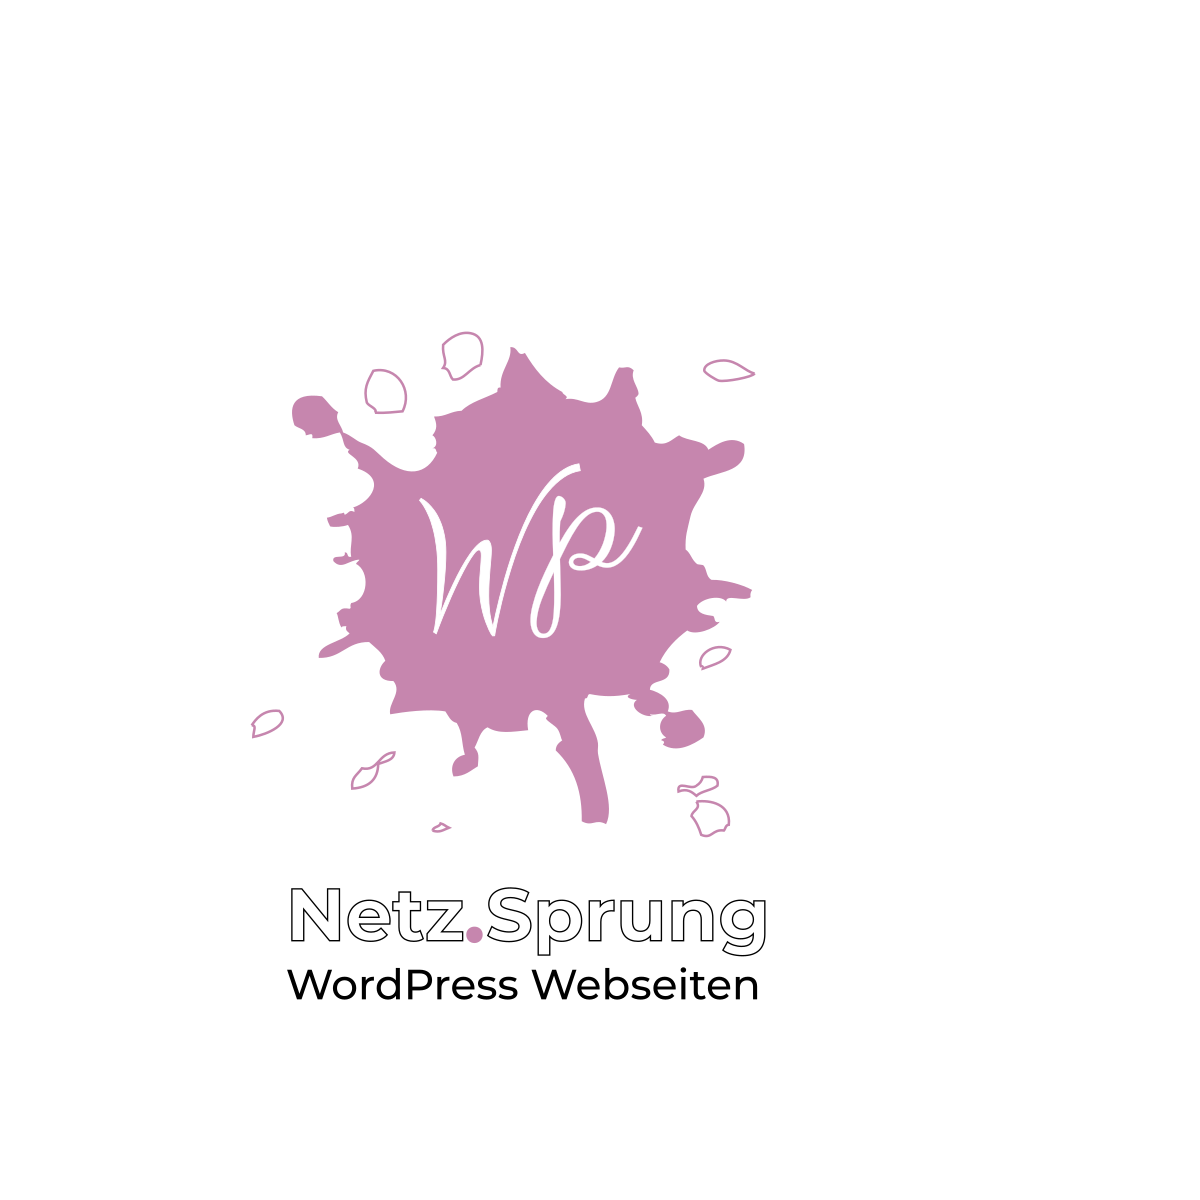 Netz.Sprung WordPress Websites